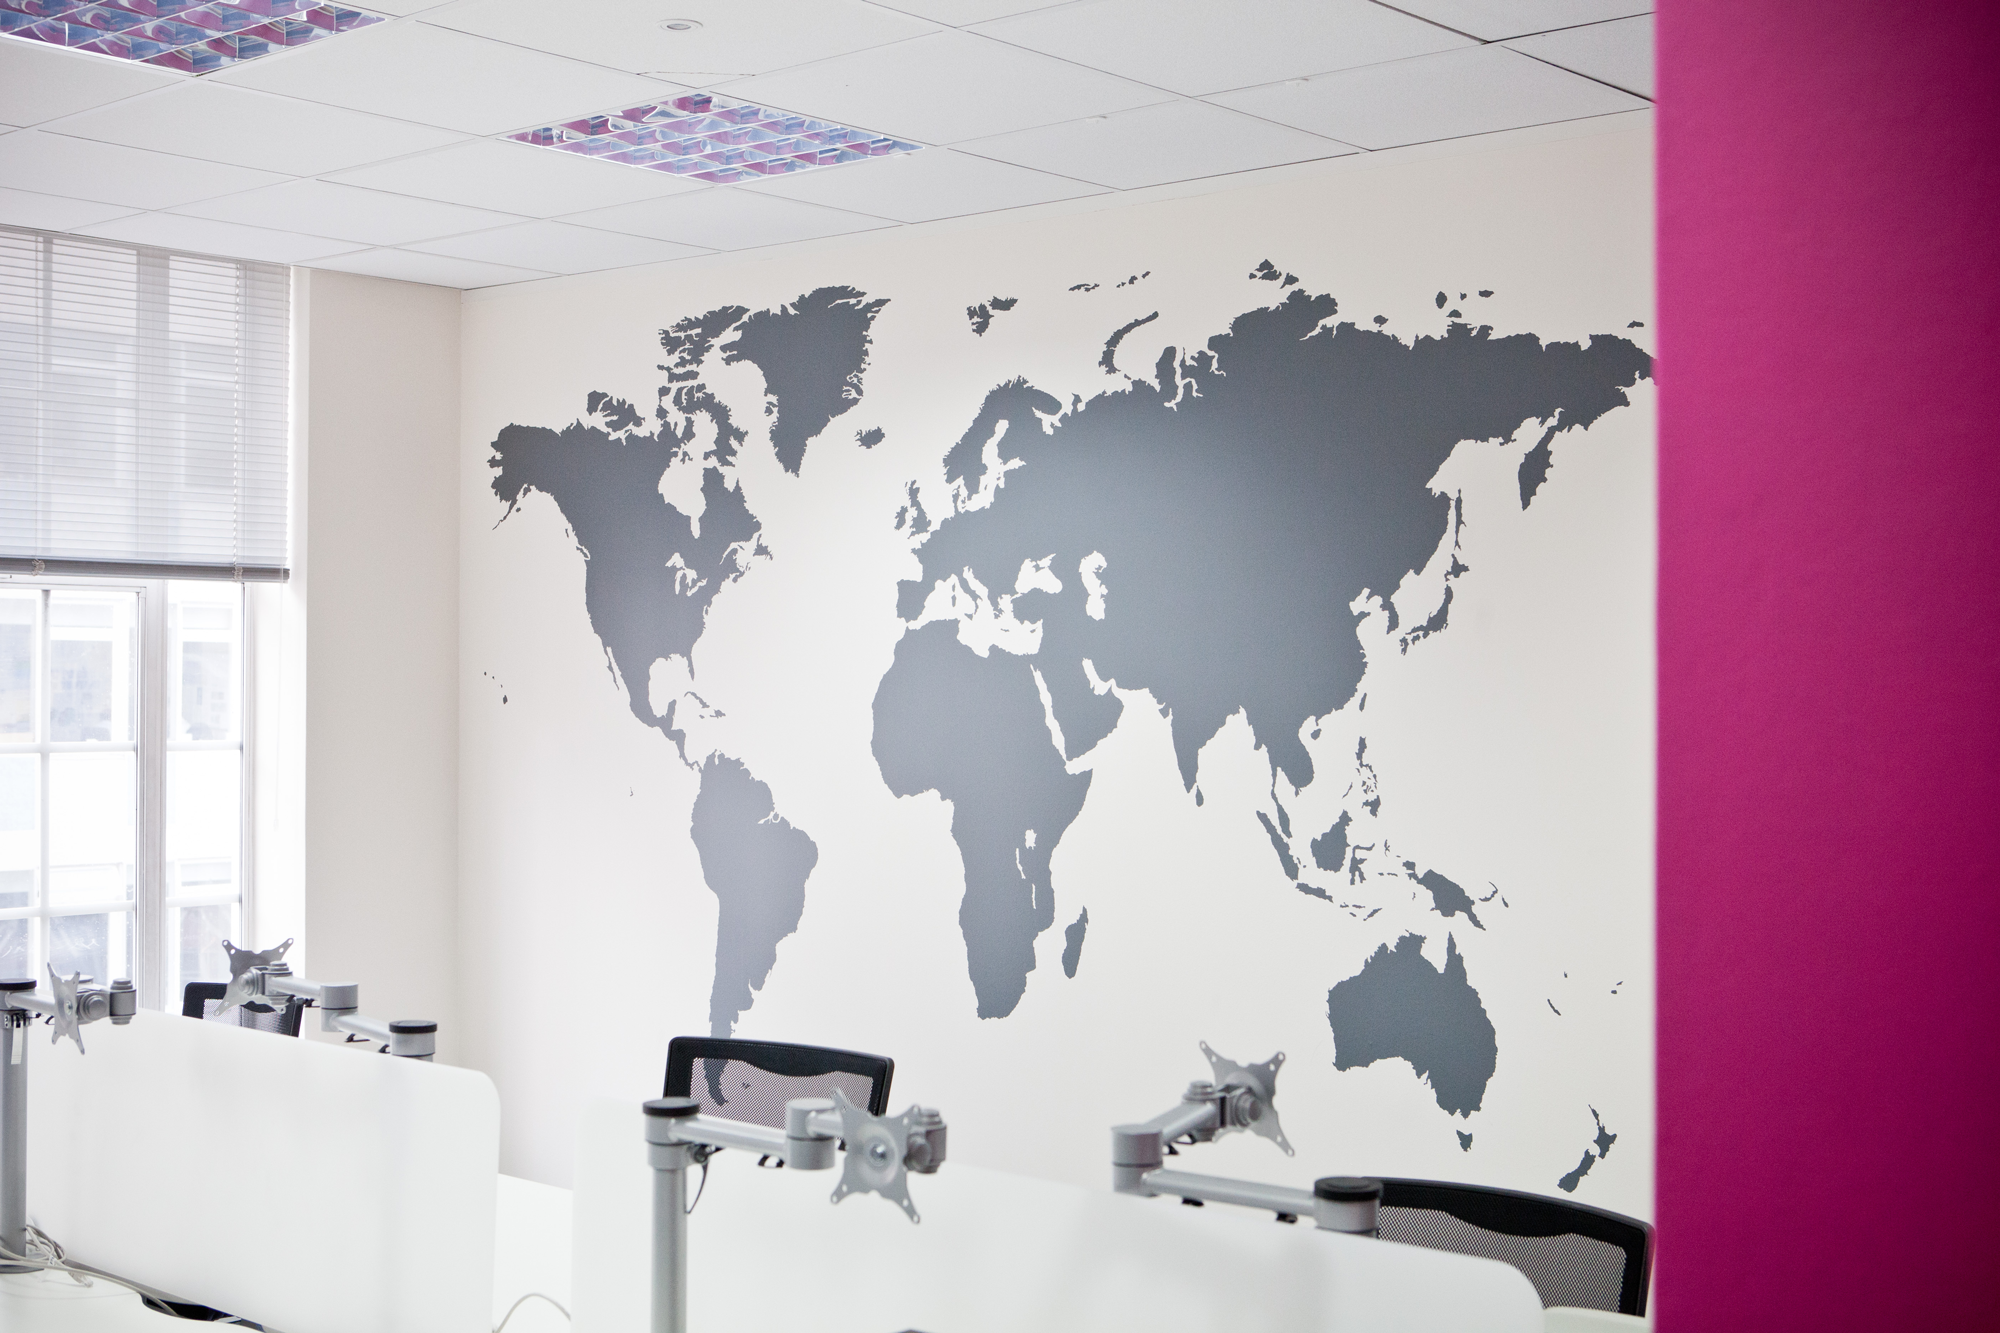 World Map Wall Art In Office In London Silhouette Of